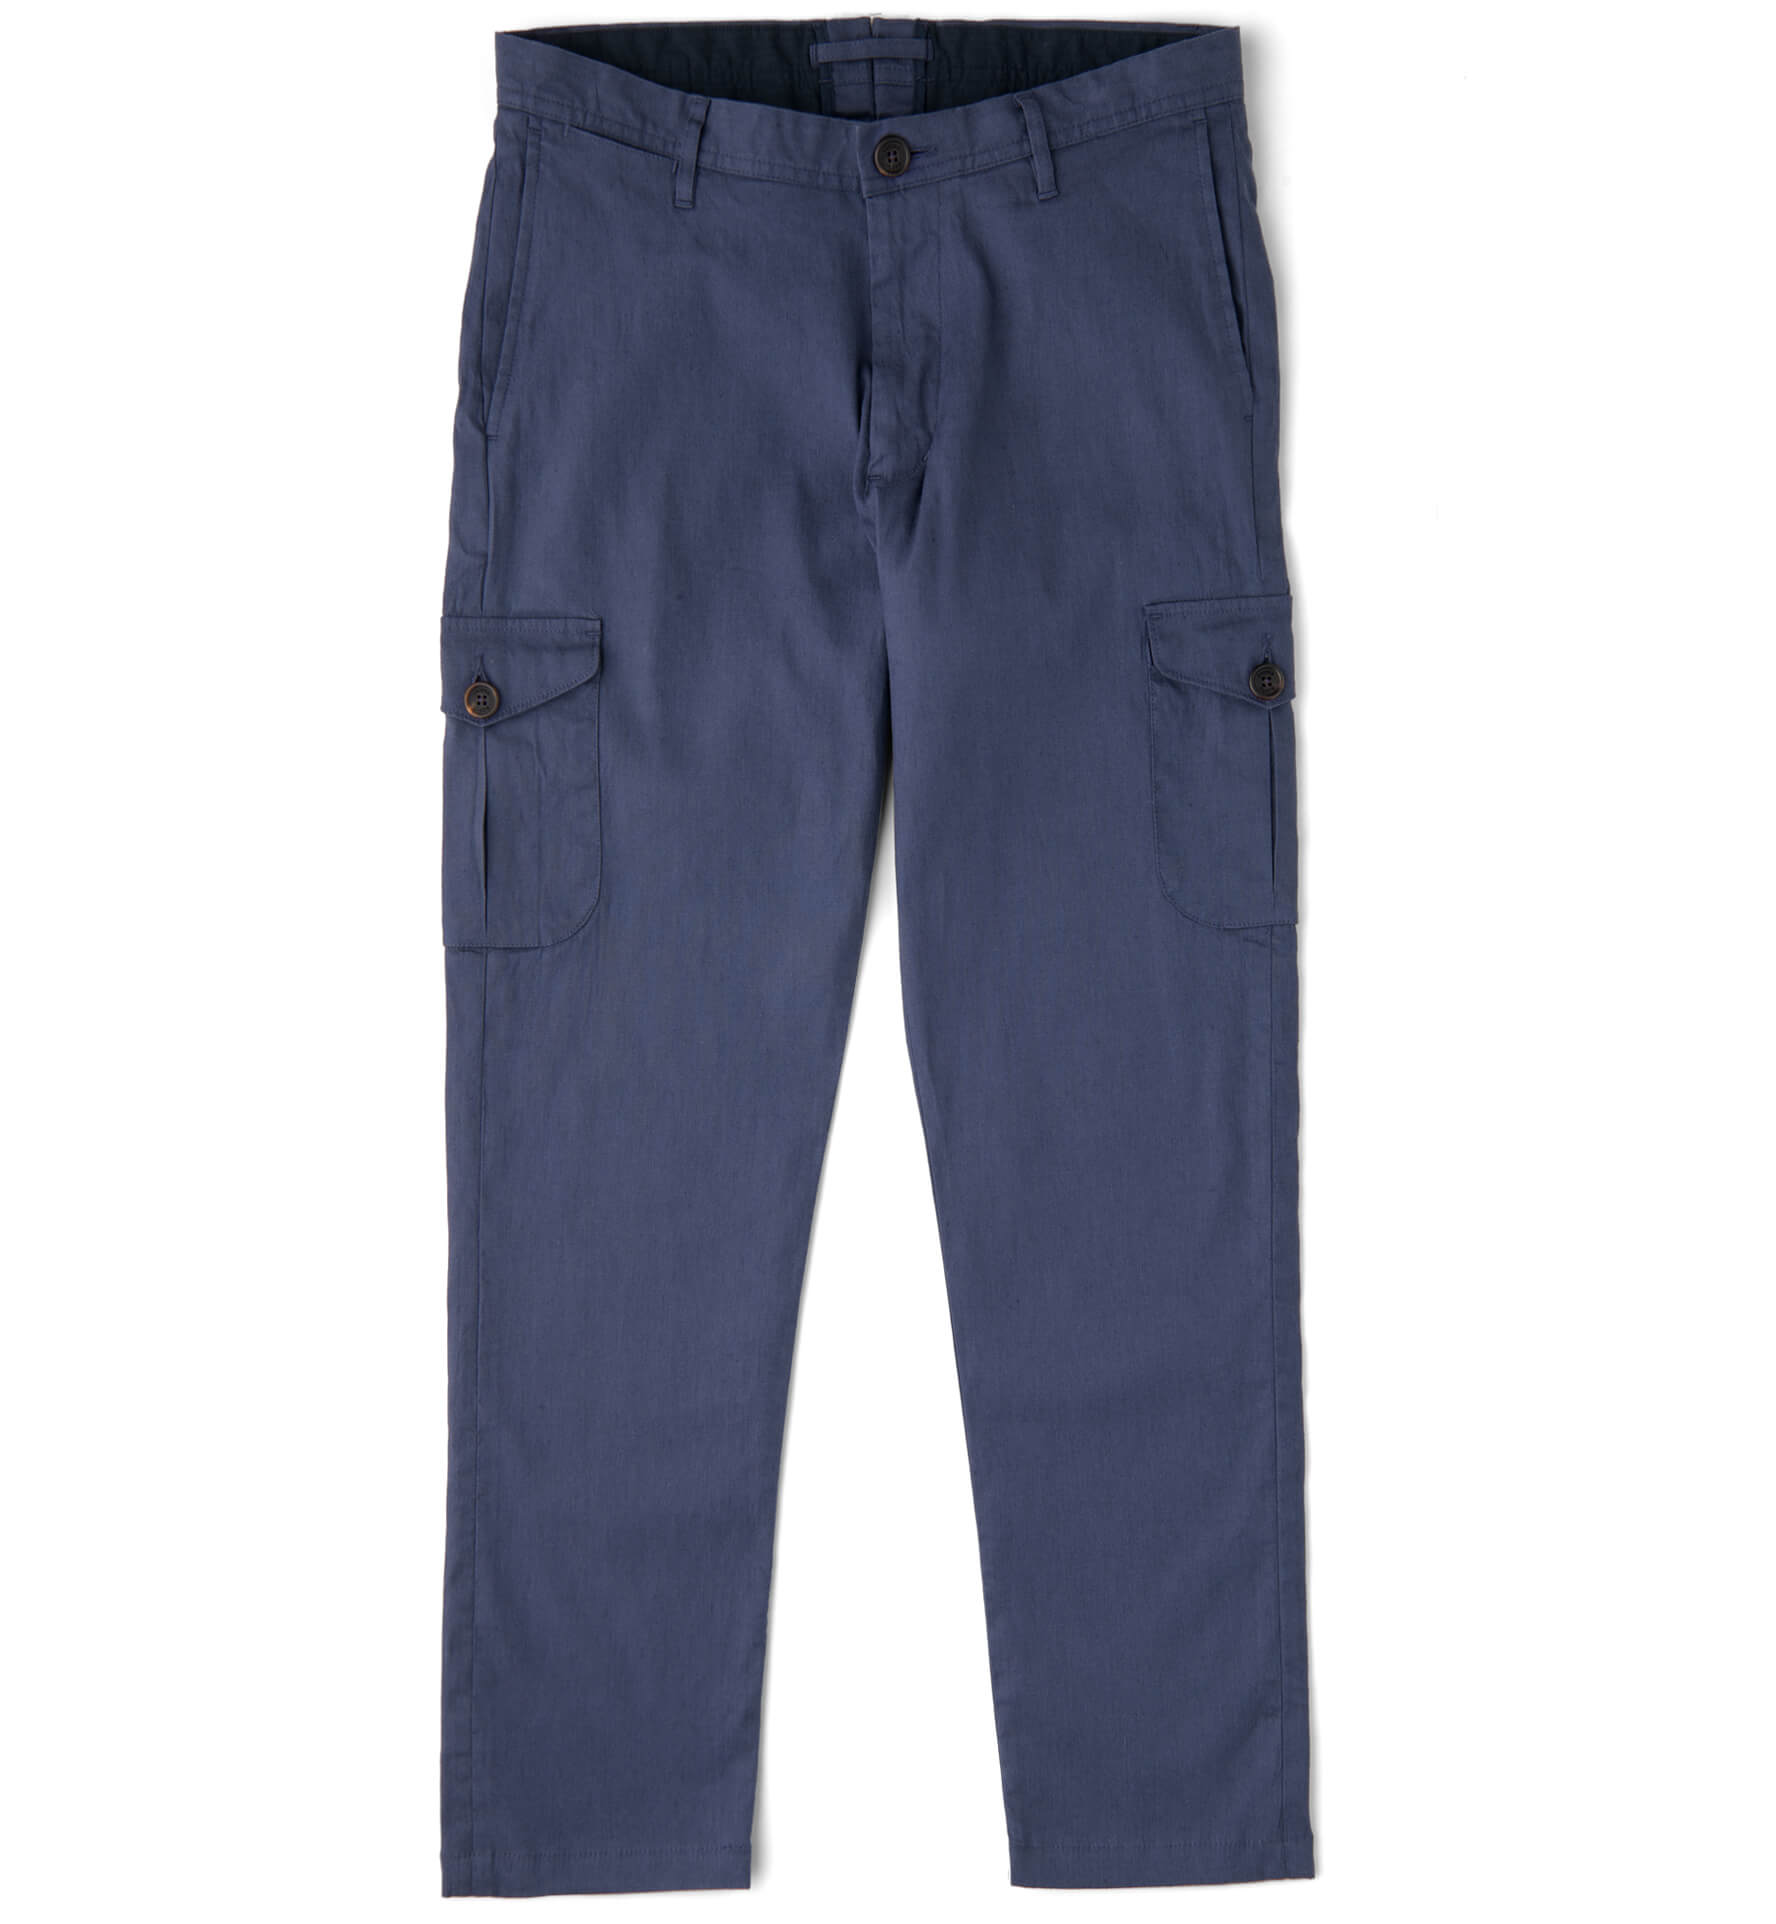 Zoom Image of Thompson Faded Navy Stretch Linen Blend Cargo Pant